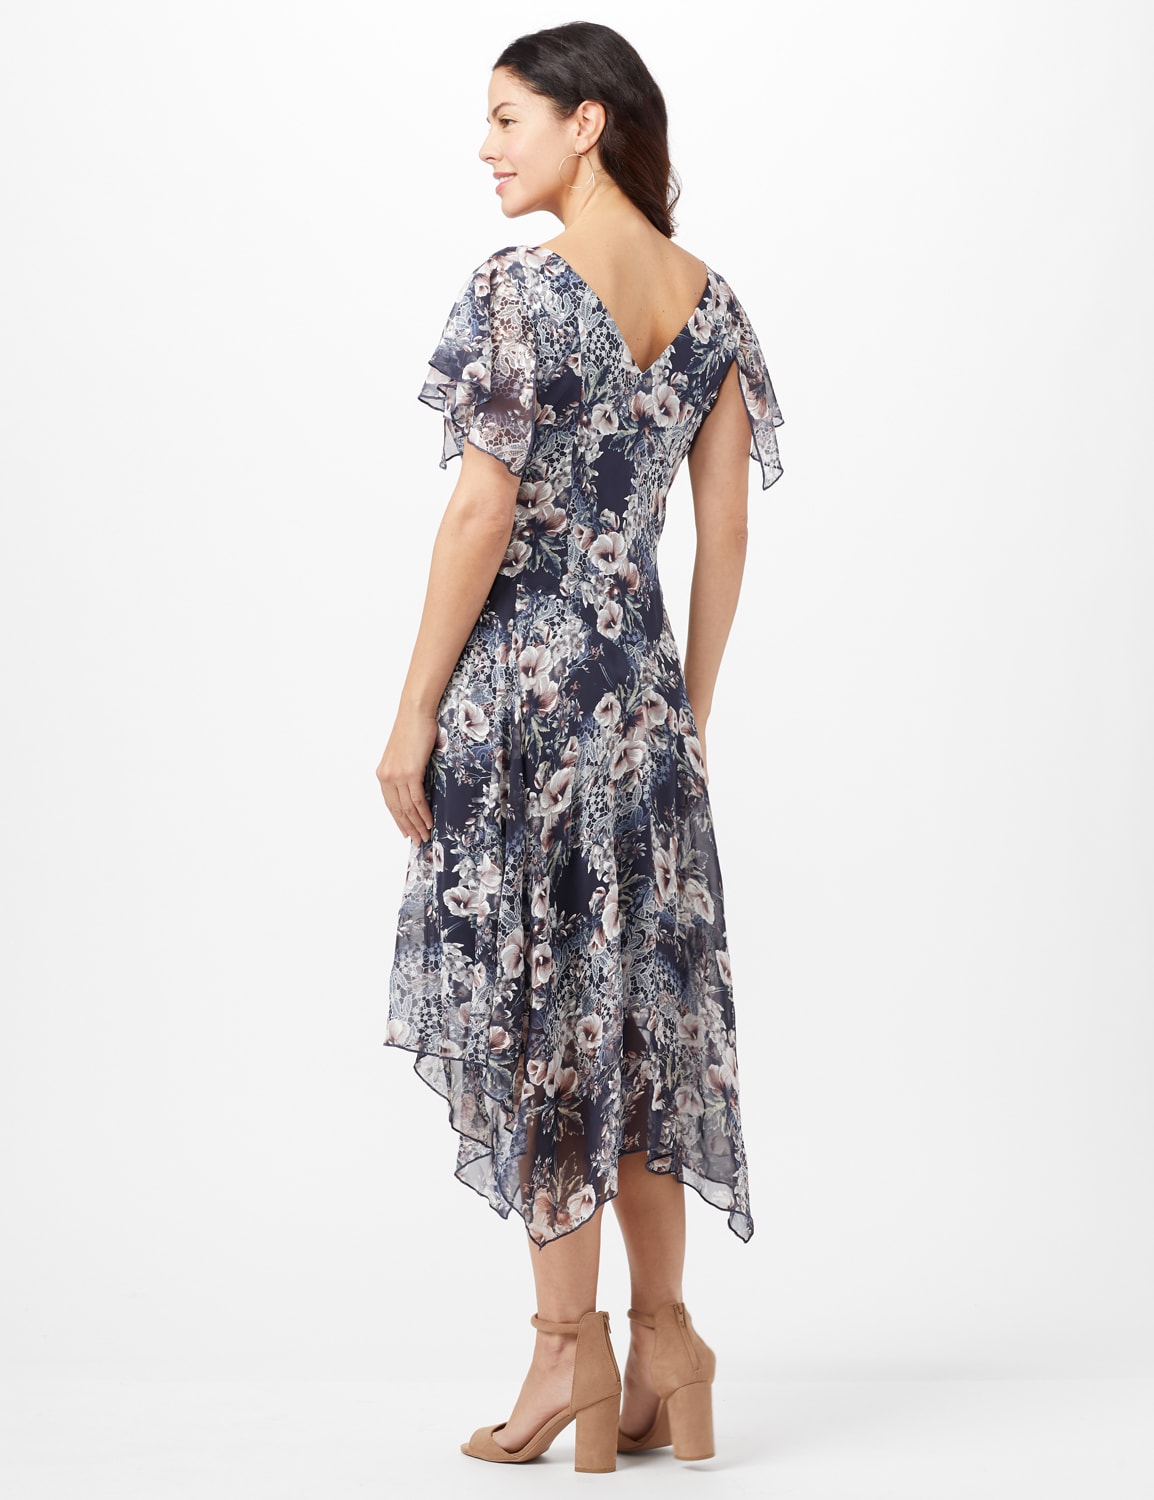 Floral Chiffon Drape Neck Hanky Hem Dress - Misses - Navy/Mauve - Back